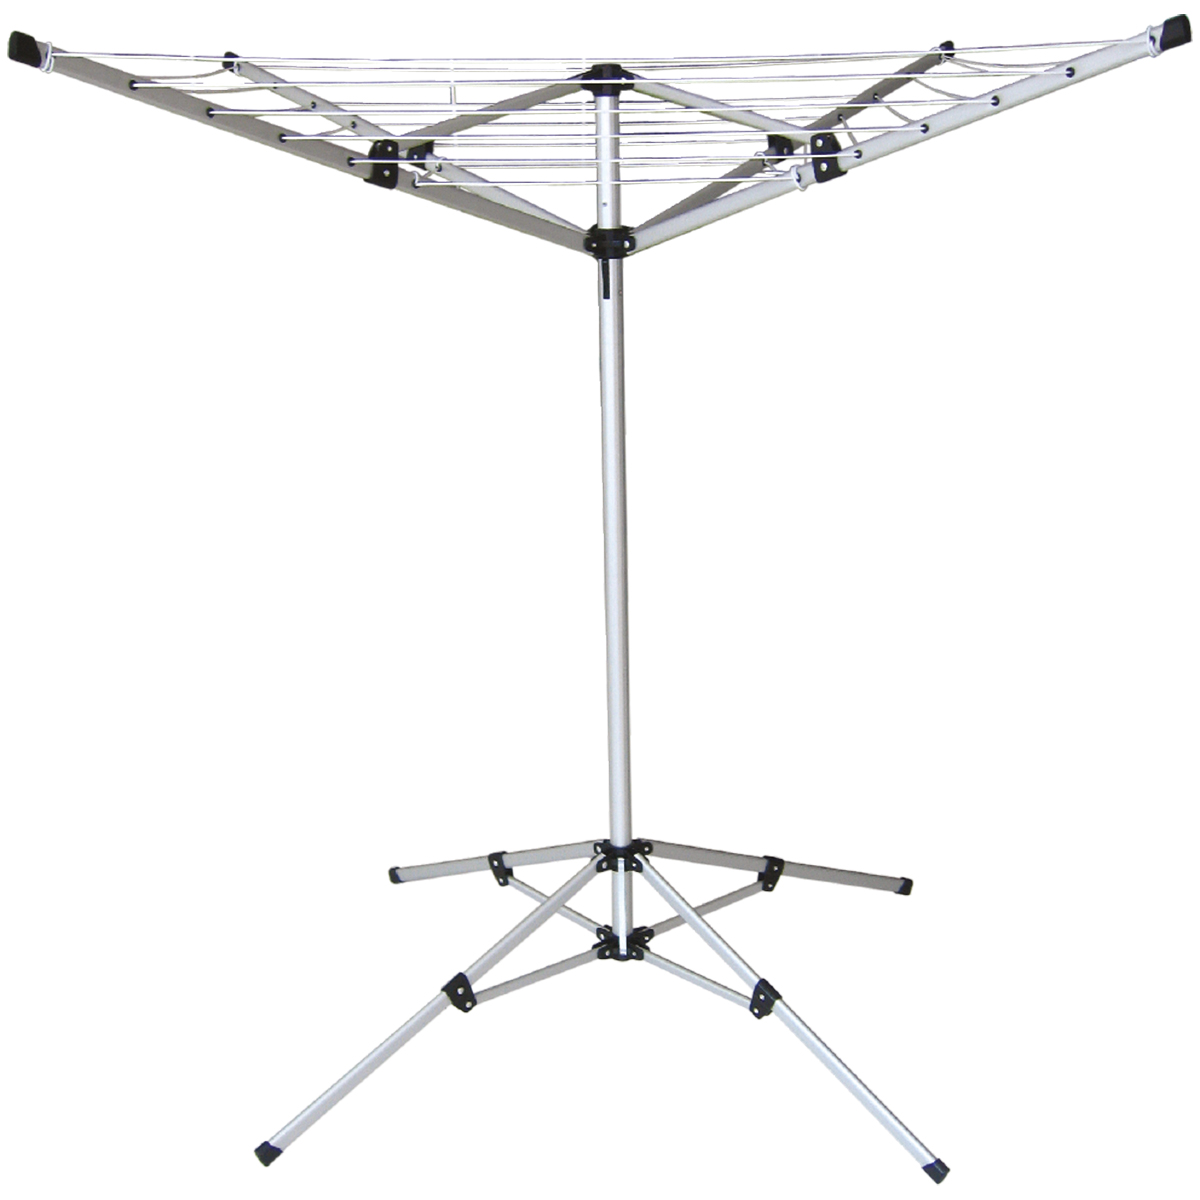 18m Clothes Airer Portable Rotary Washing Line 4 Arm Free